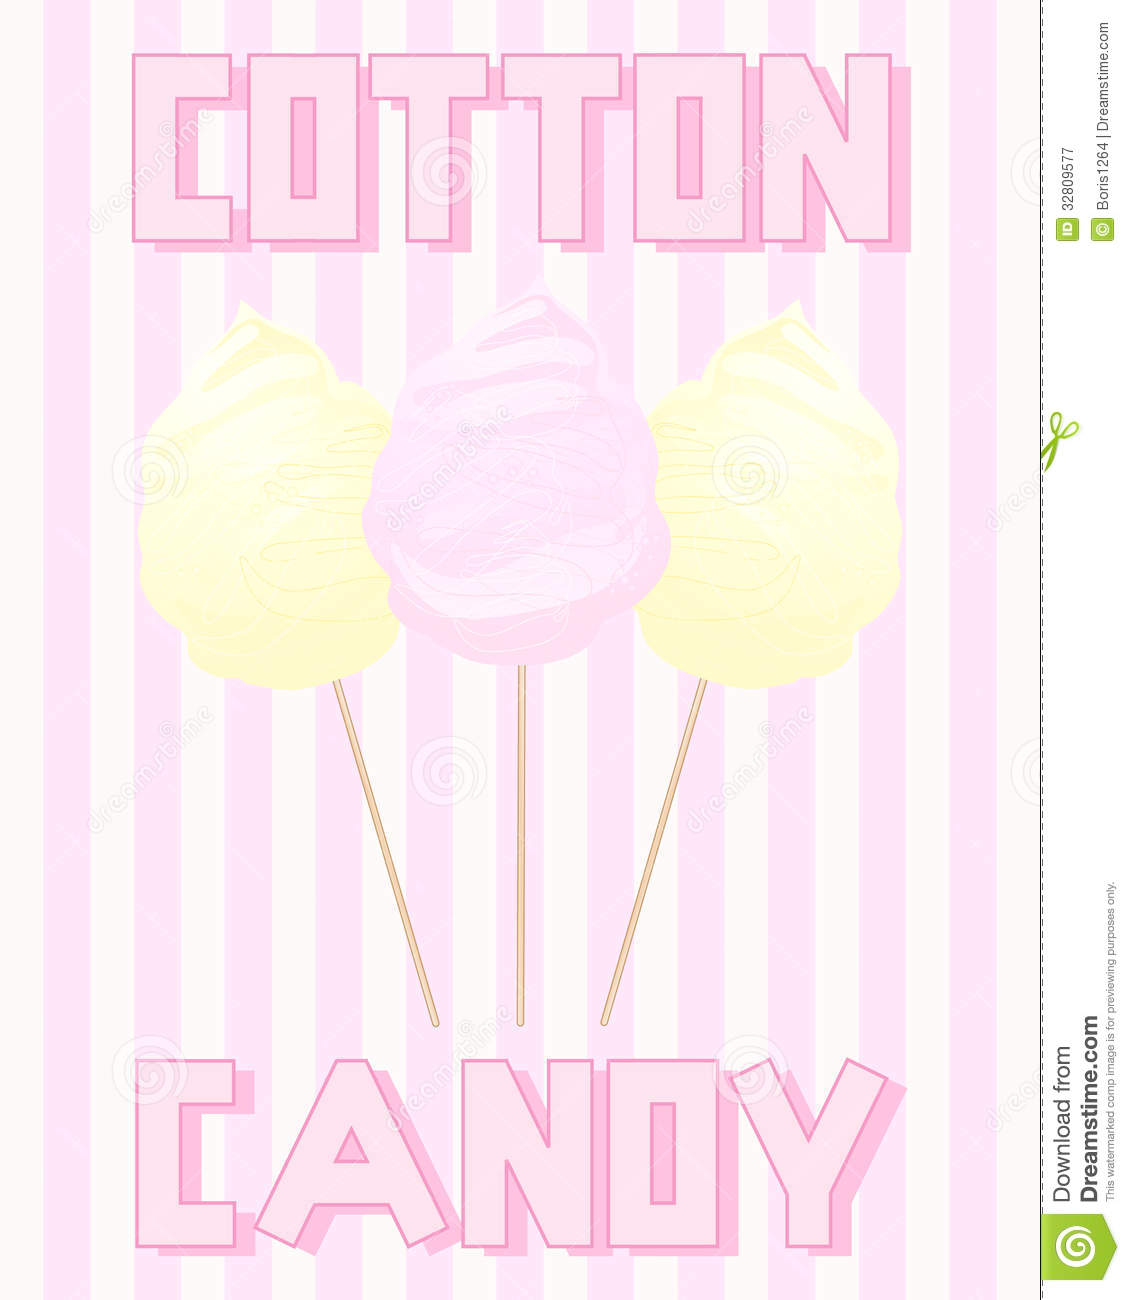 Cotton Candy Sign: Vintage Cotton Candy Royalty Free Stock Photography